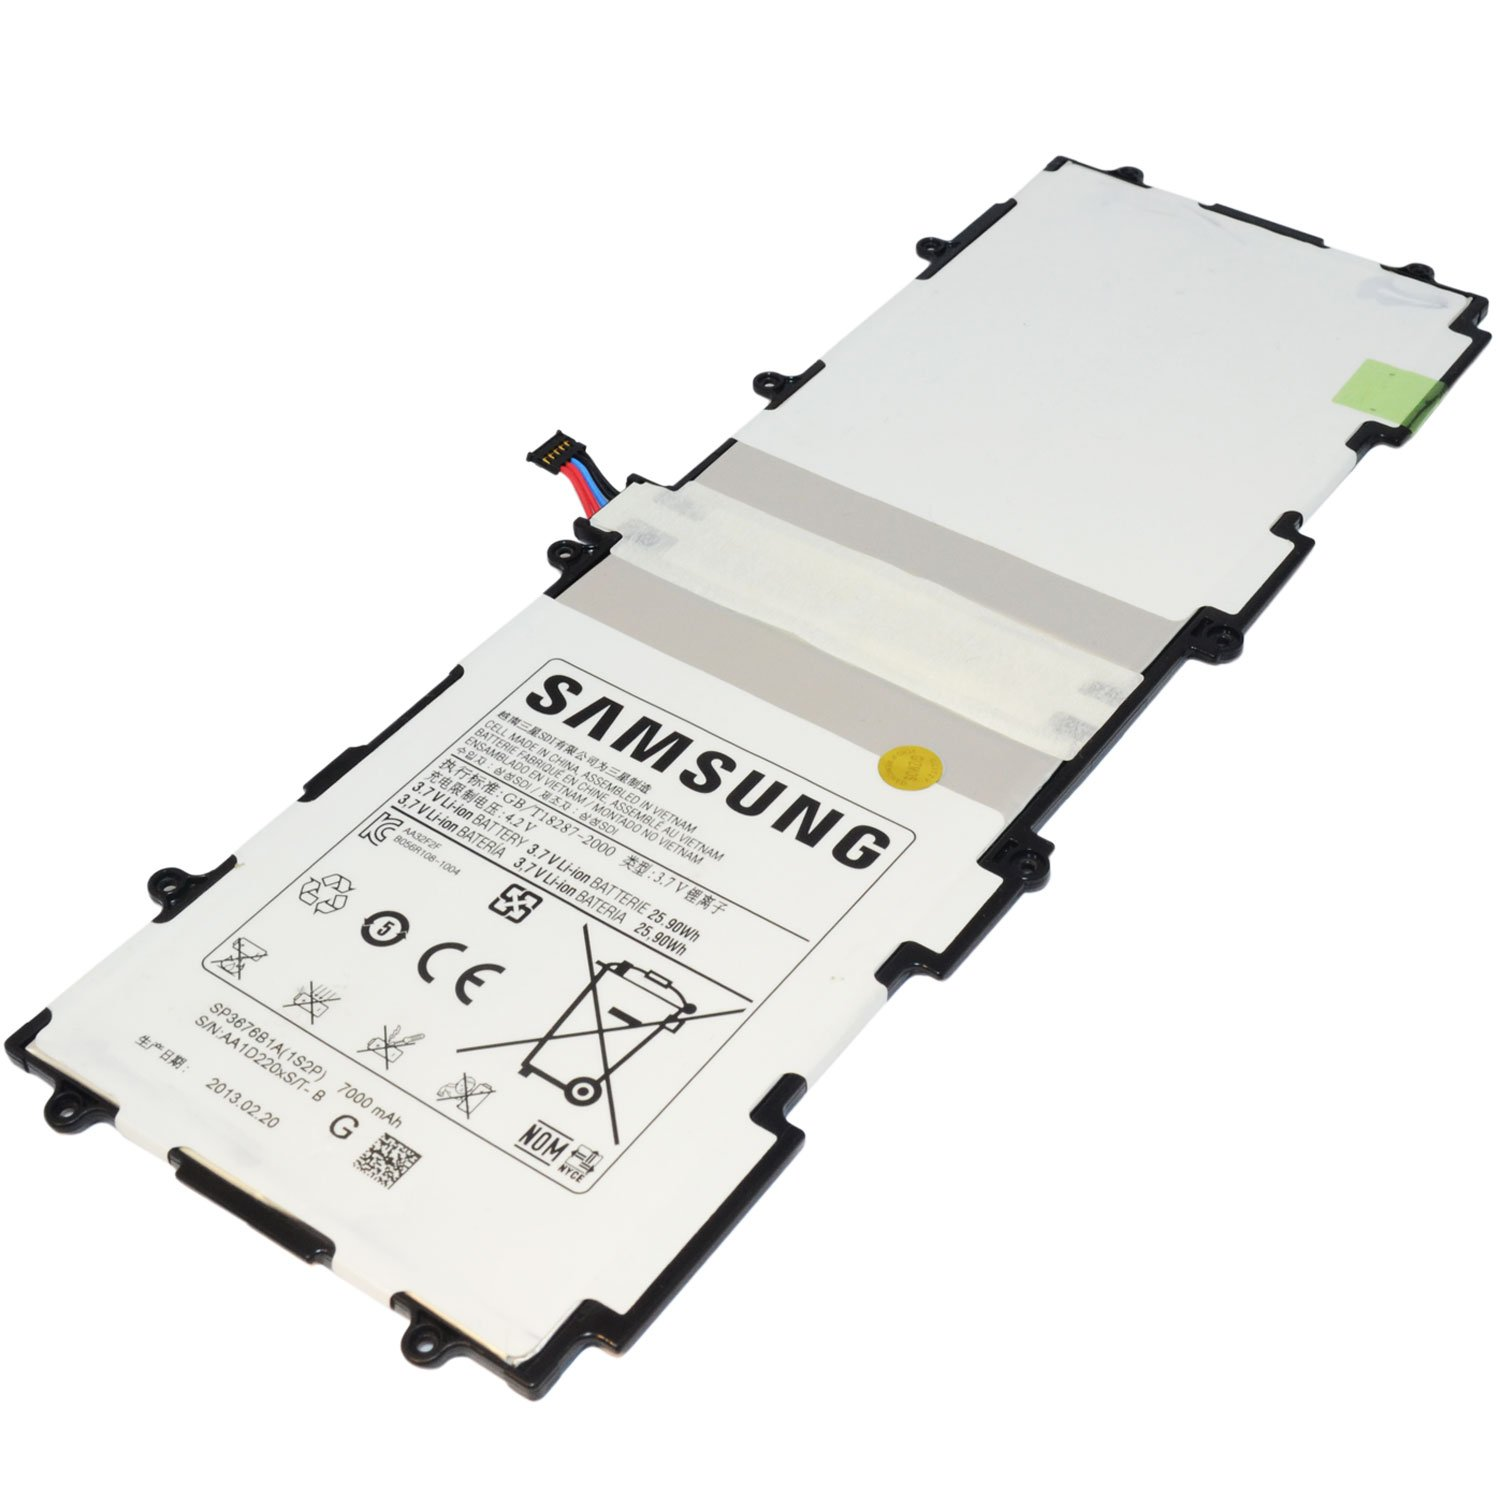 SAMSUNG GALAXY NOTE TAB 2 10.1 7000mAh BATTERIE ORIGINALE TABLET SP3676B1A 1S2P